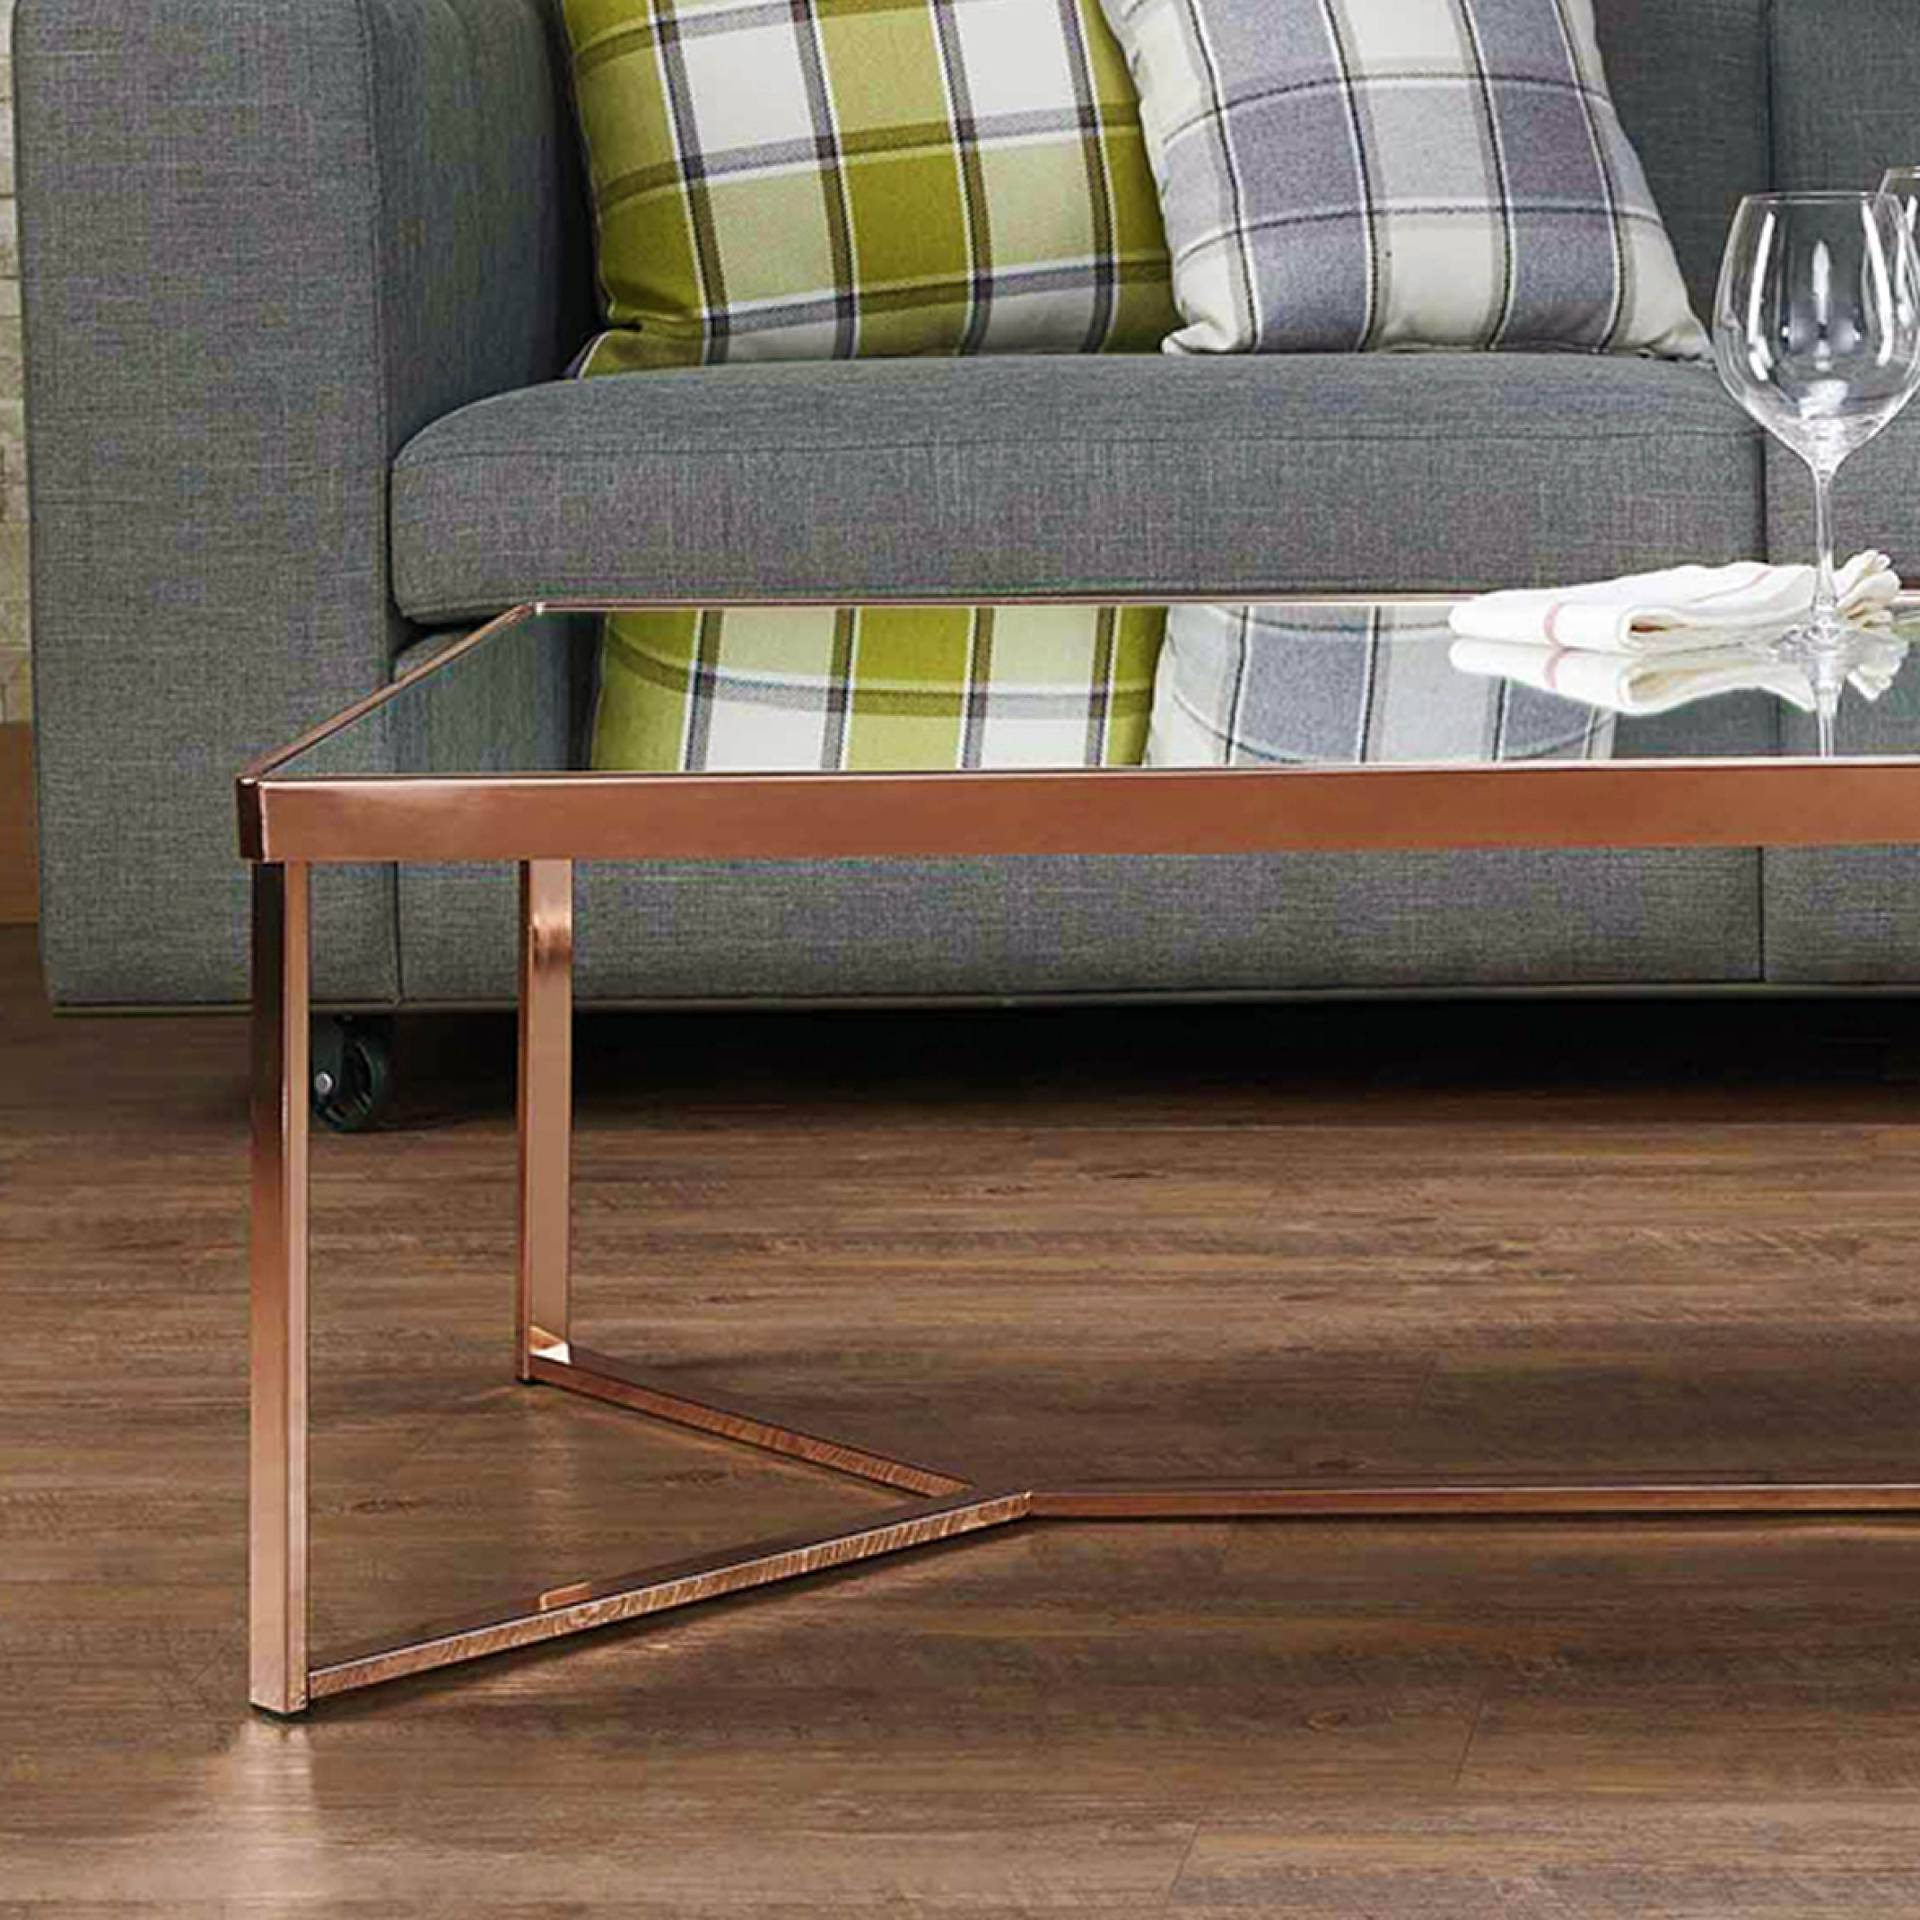 Easy Assembling Coffee Table Fit To Place Anywhere At Home Modern Forward